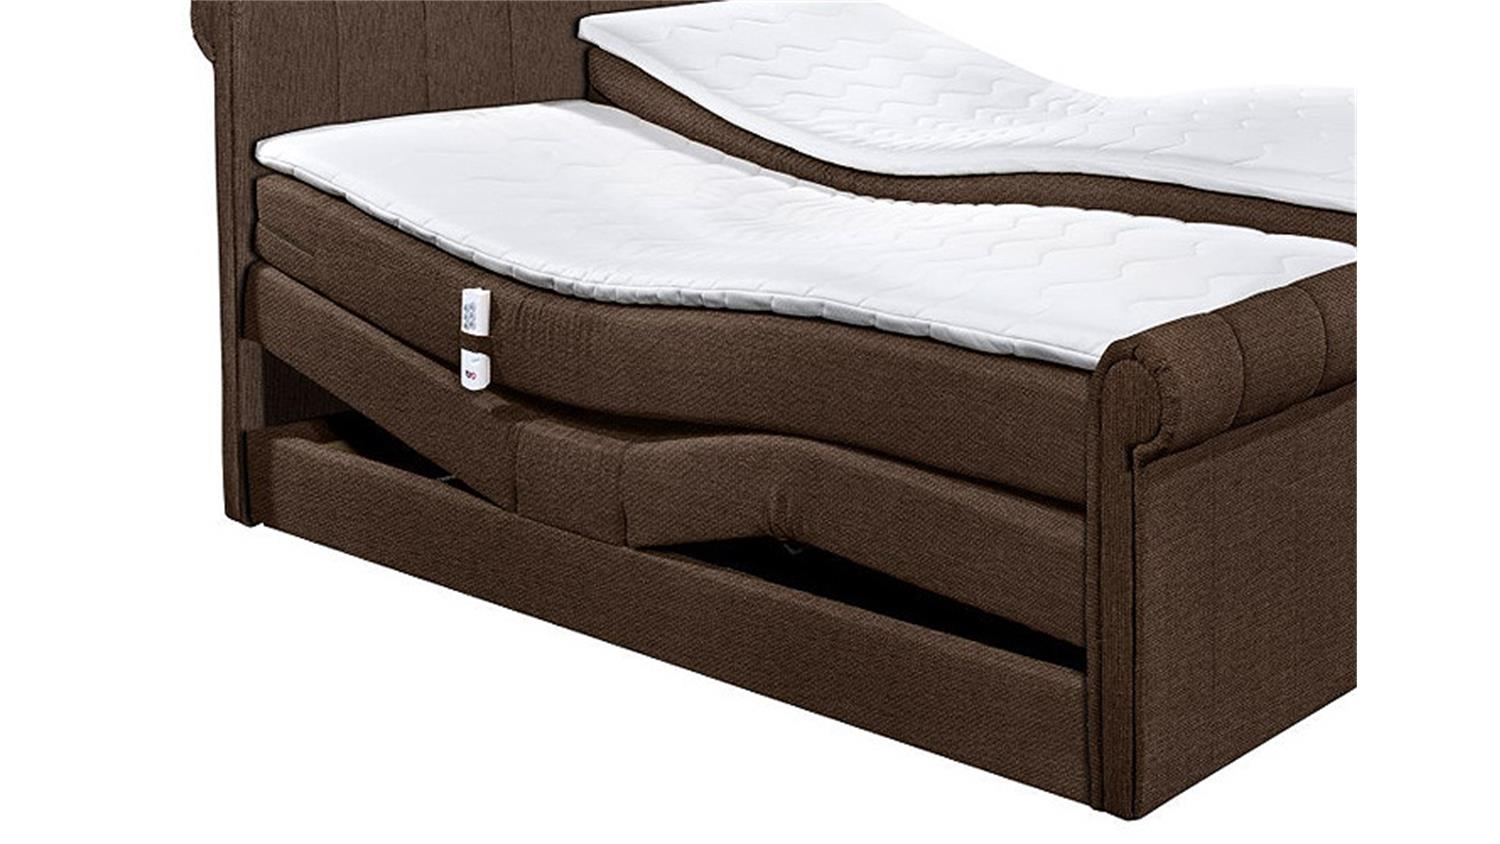 boxspringbett 4 california bett in braun mit motor 180x200. Black Bedroom Furniture Sets. Home Design Ideas